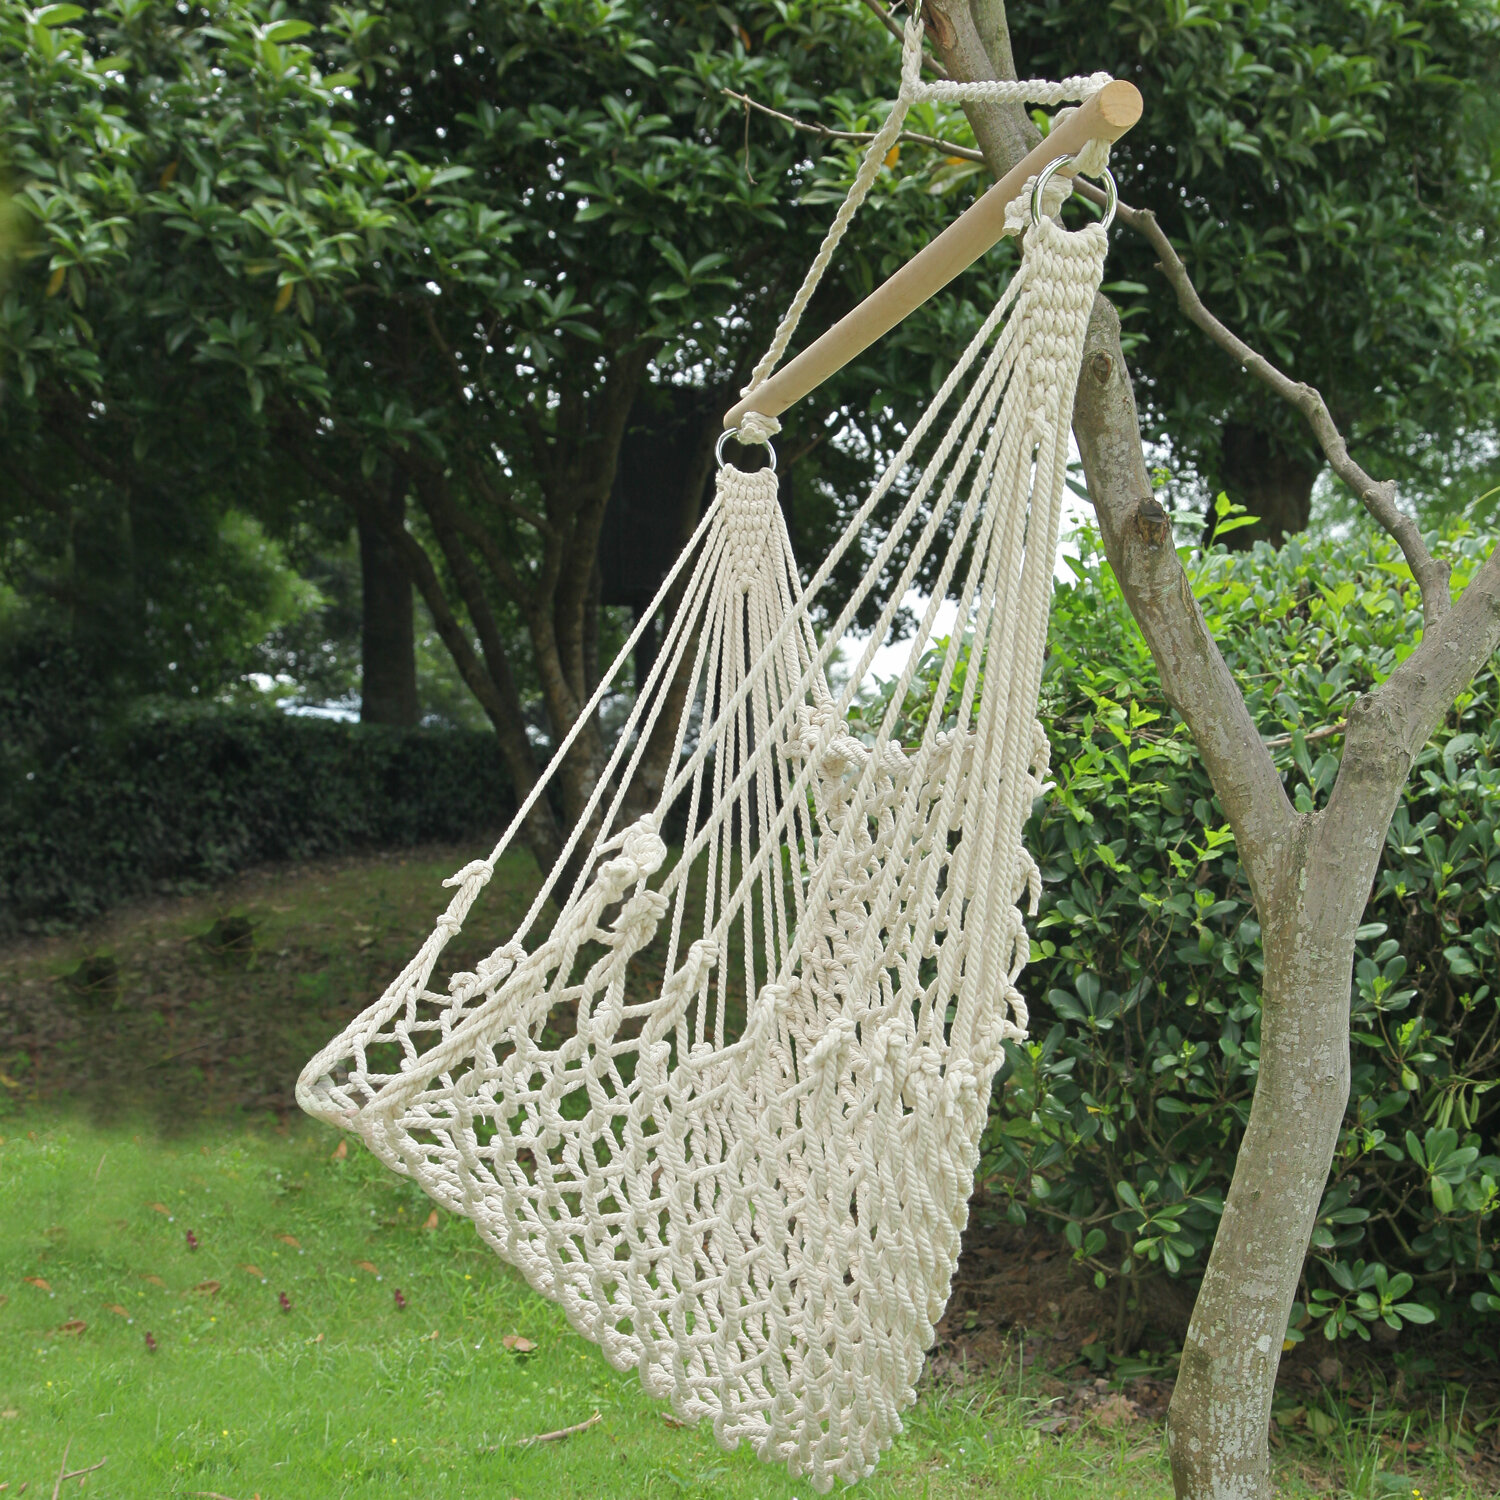 spreader woven best and case carrying choice cotton products hammock bestchoiceproducts shop w double wood rope product rakuten